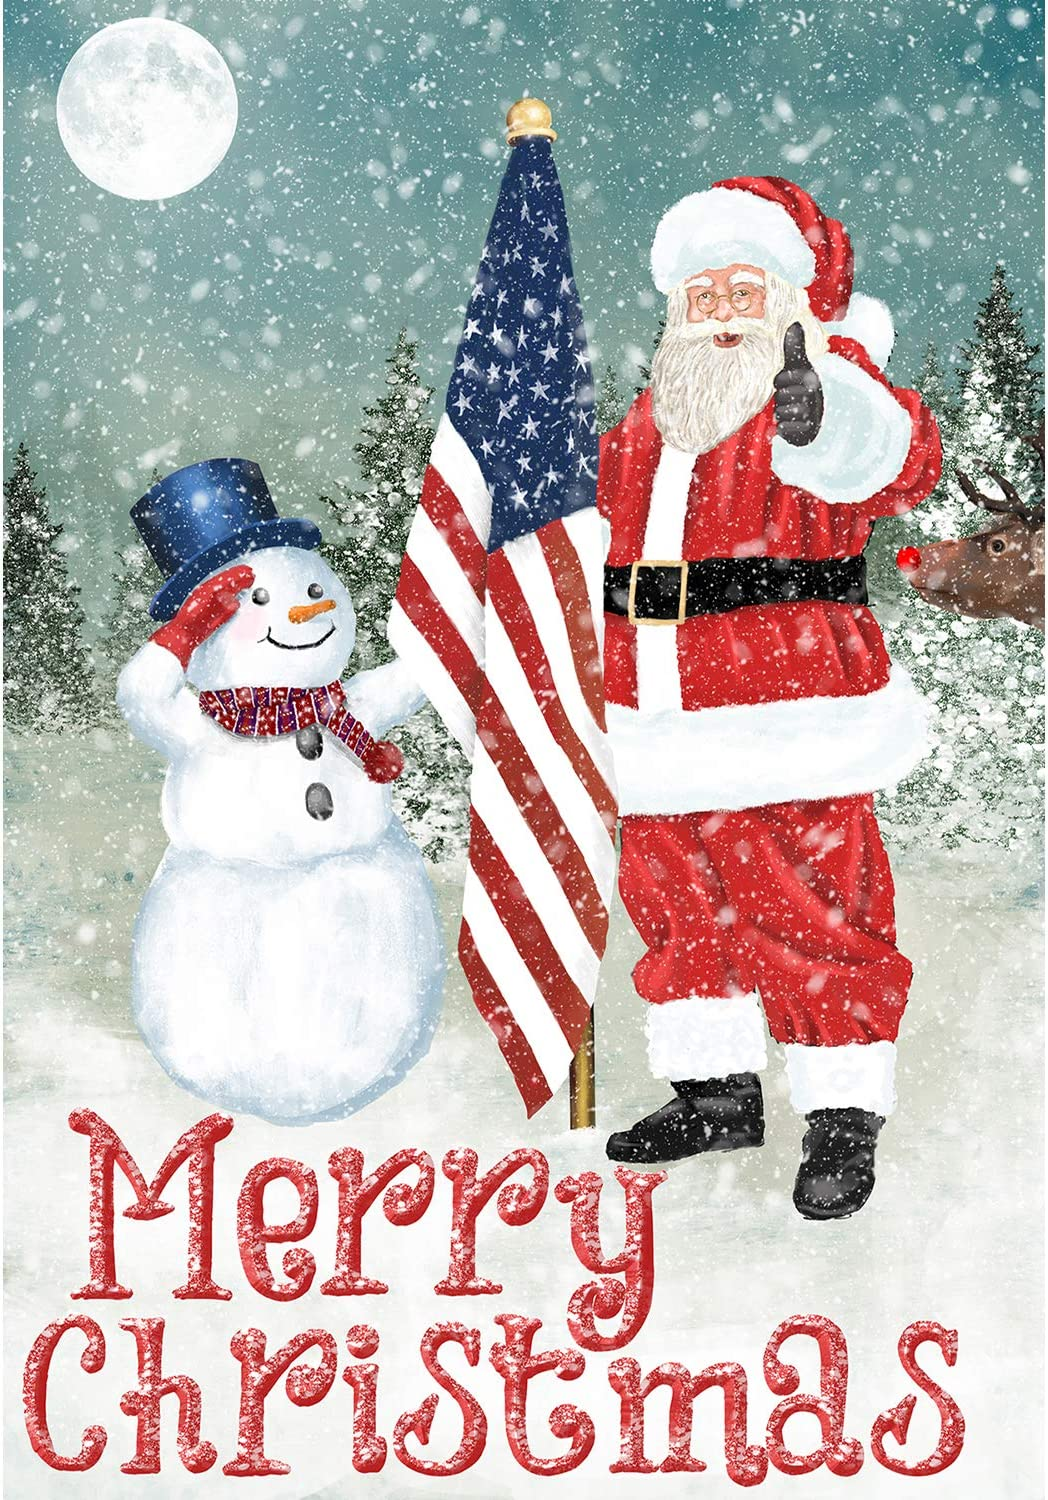 America Forever Flags Double Sided Garden Flag - Merry Christmas USA - 12.5